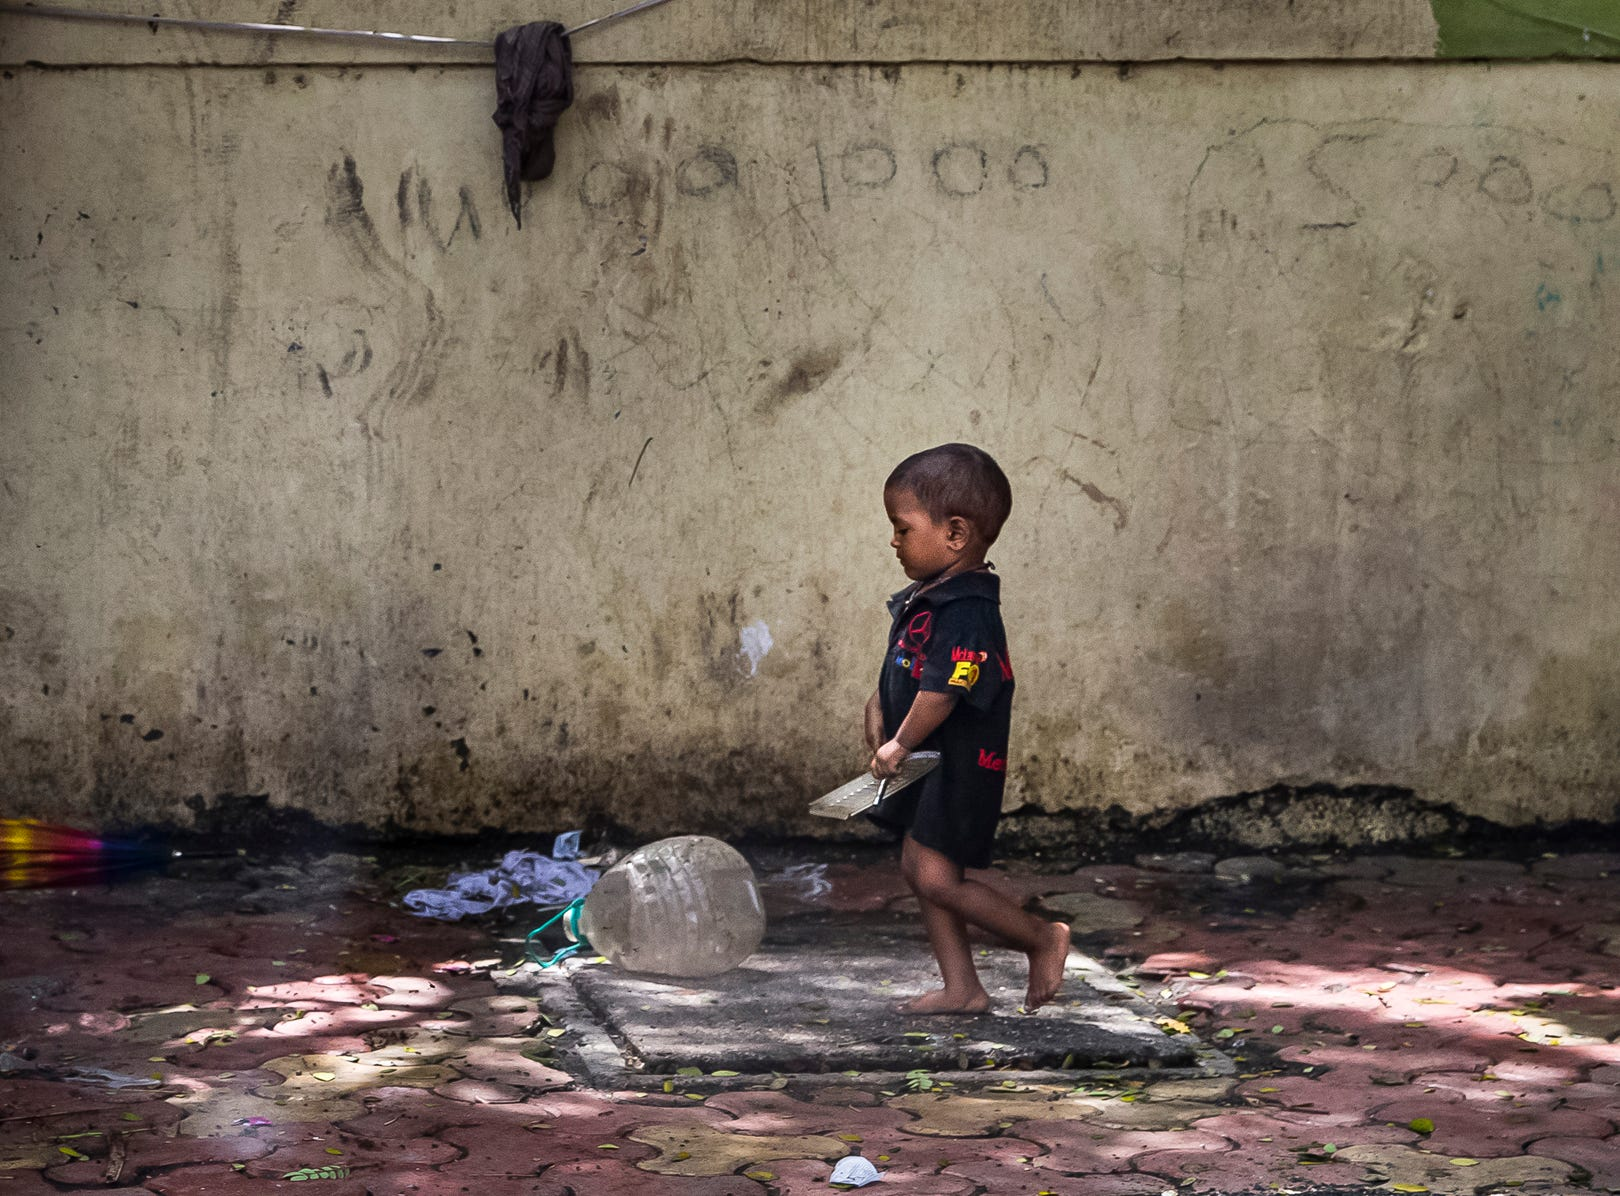 A young child walks along a sidewalk near a makeshift hut in Mumbai, India.